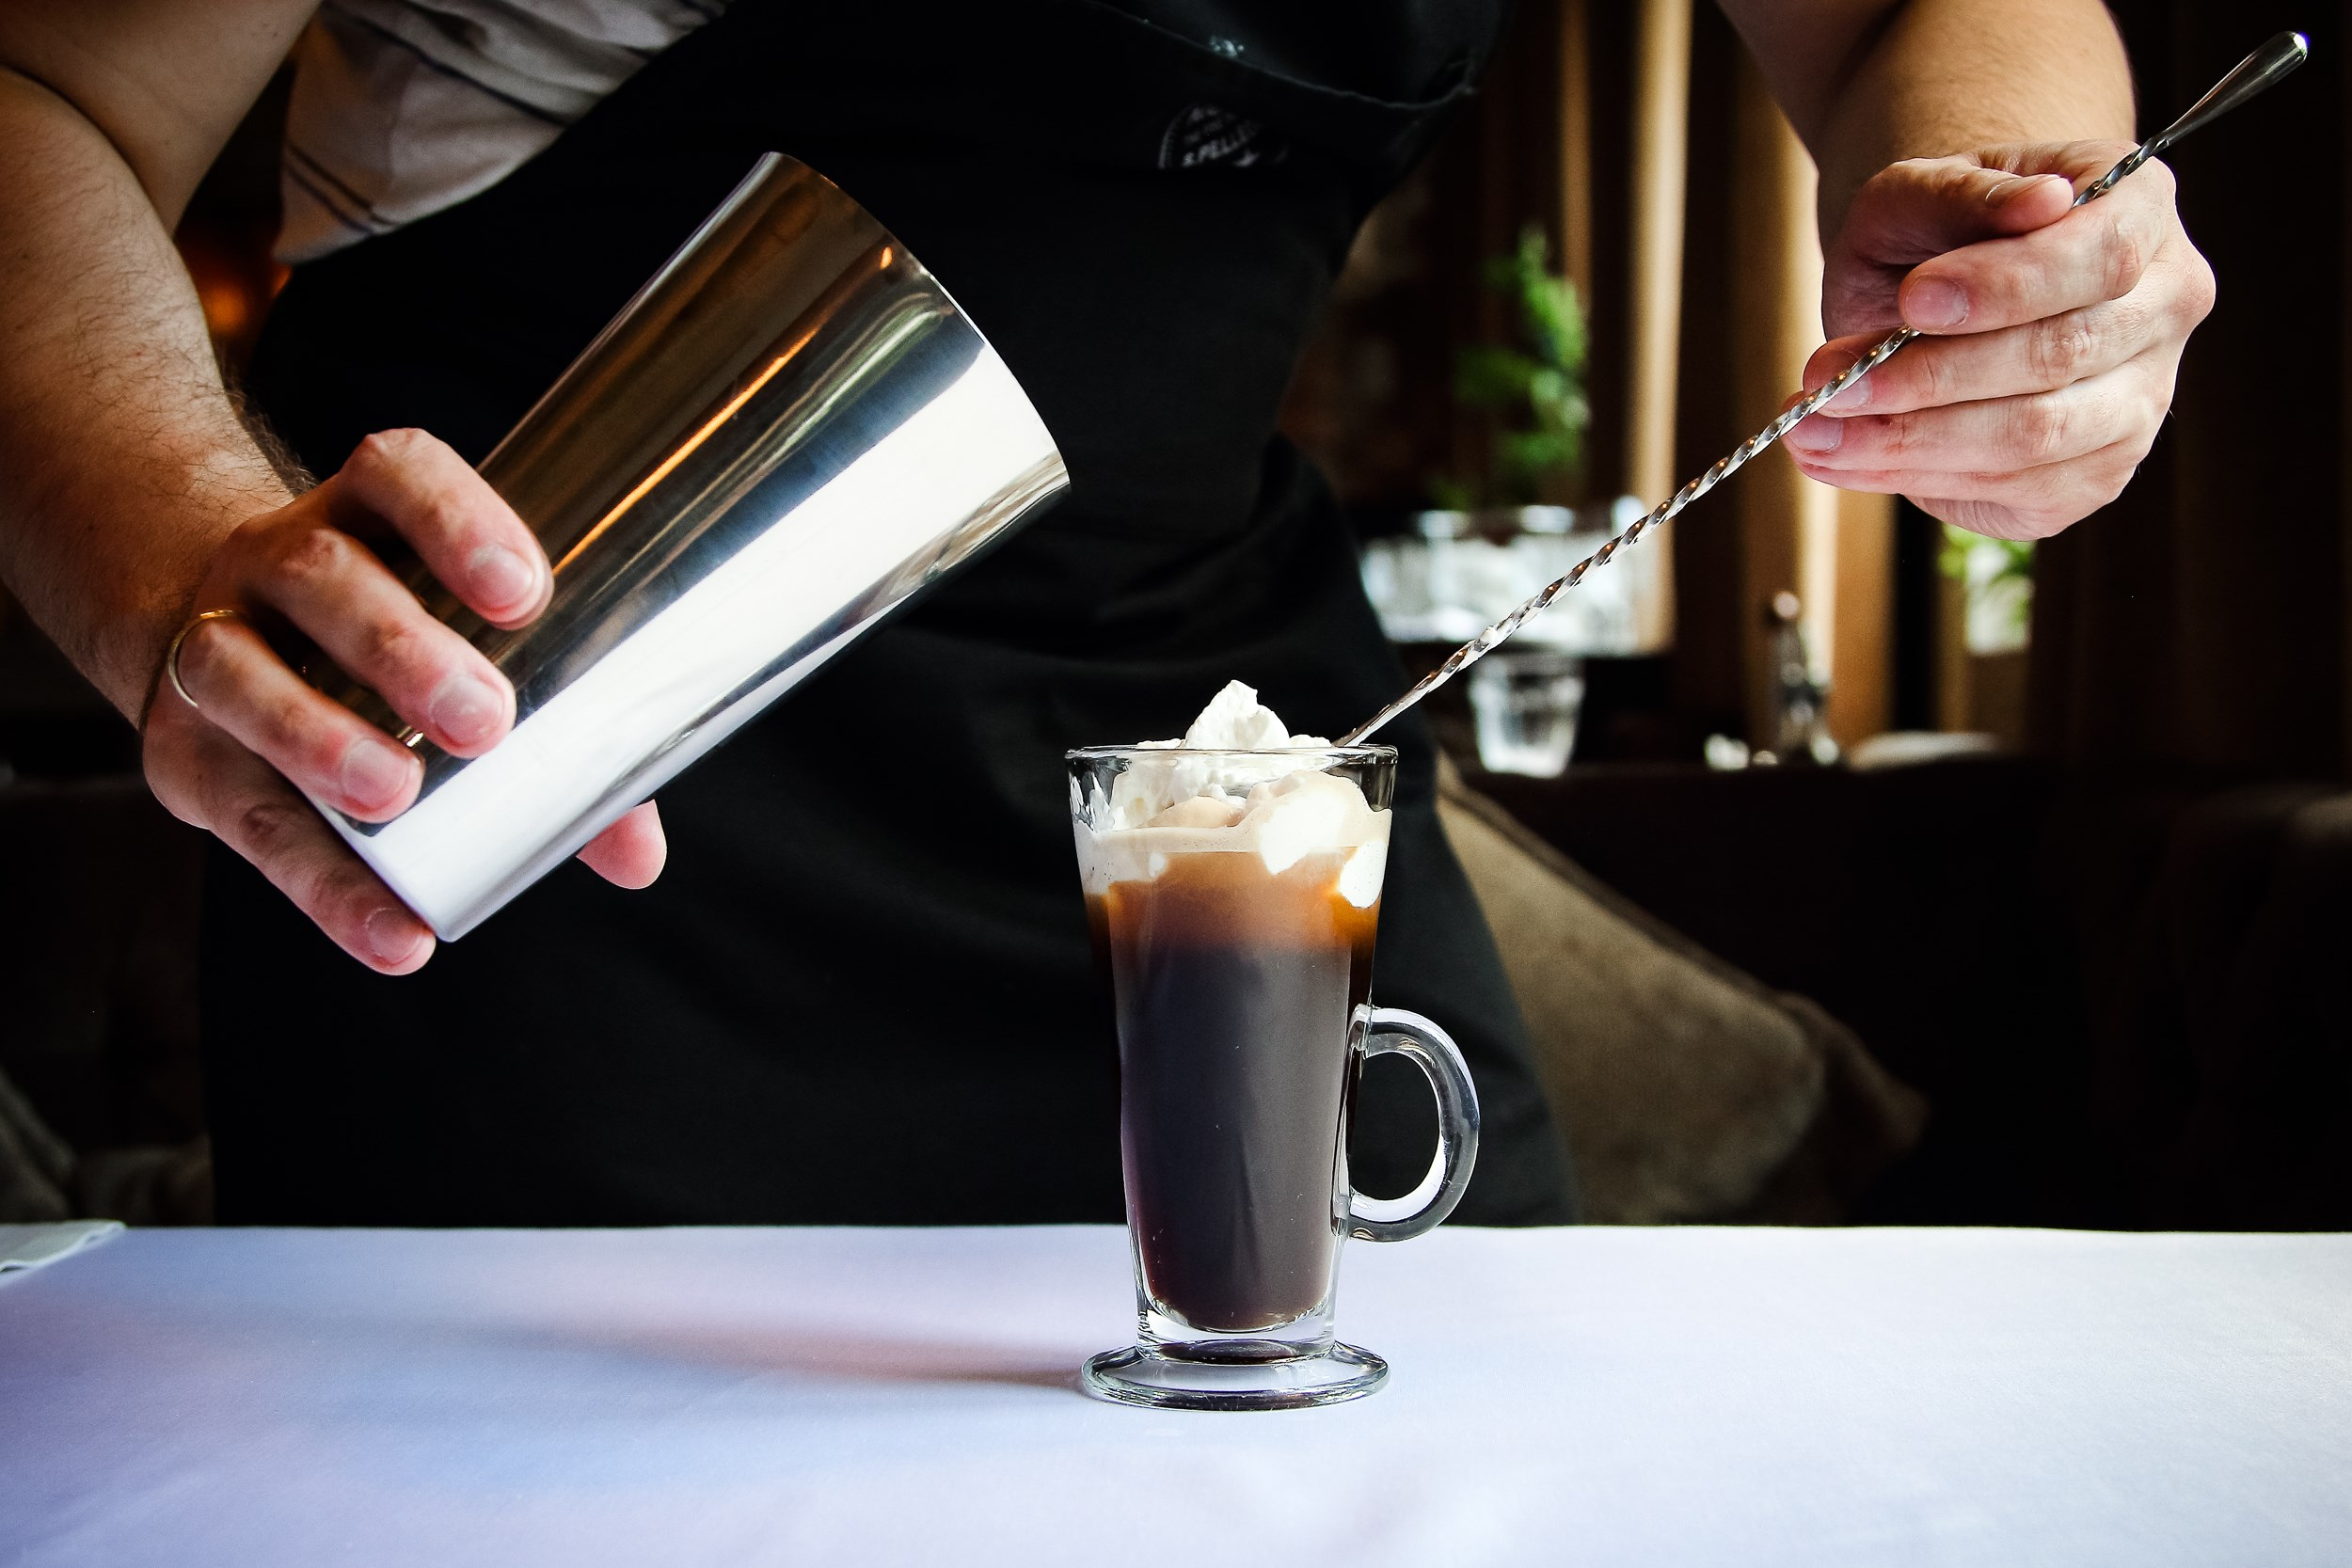 Irish coffee (Ирландский кофе)